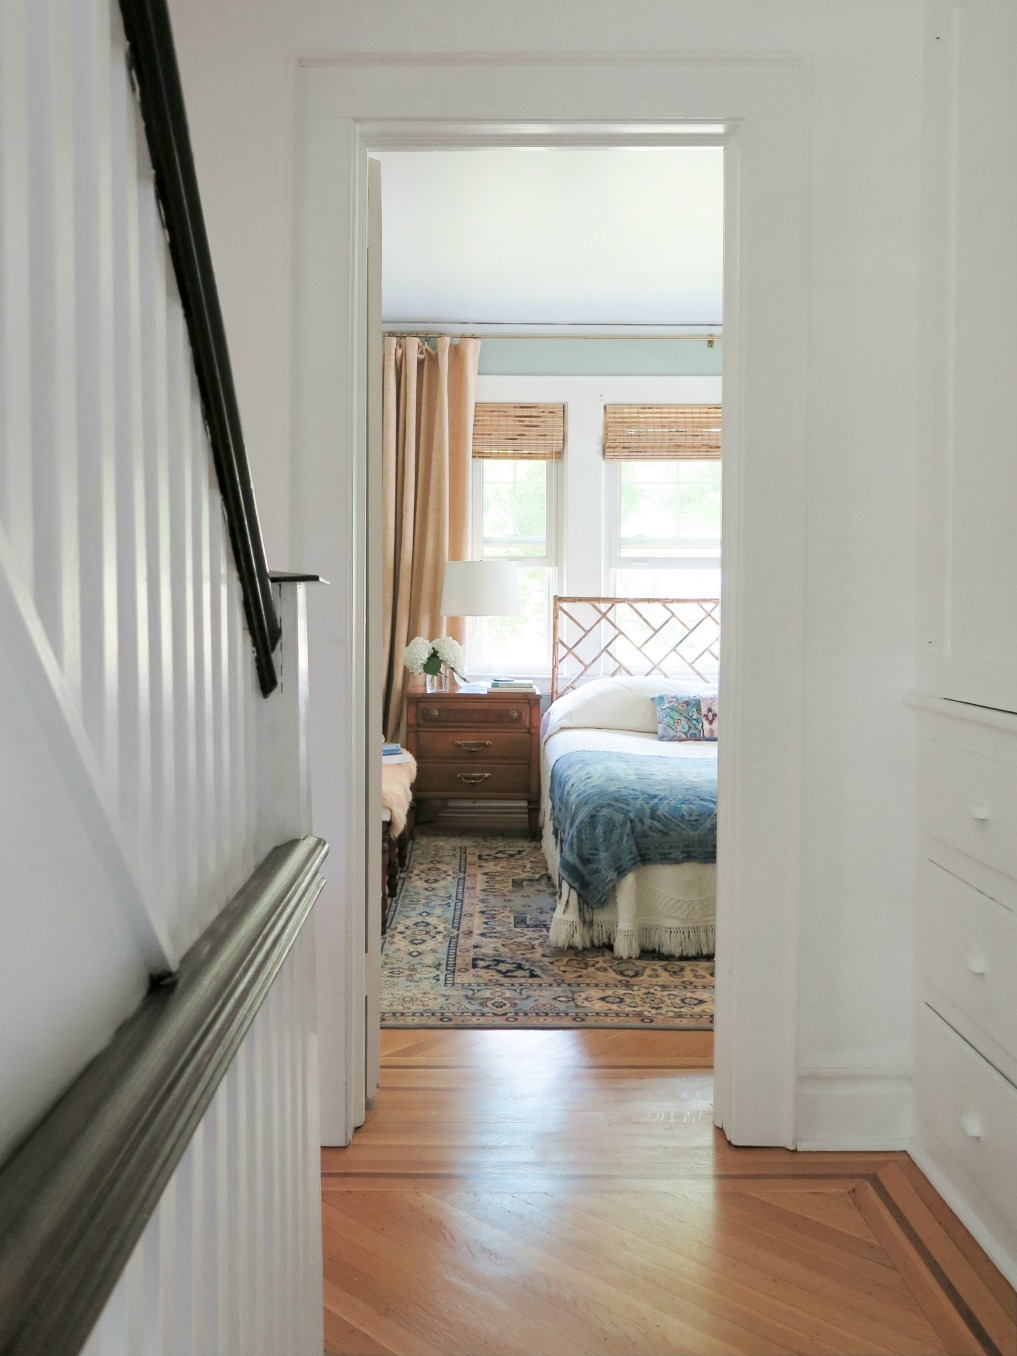 Old home tour with original hardwood floors on the second floor